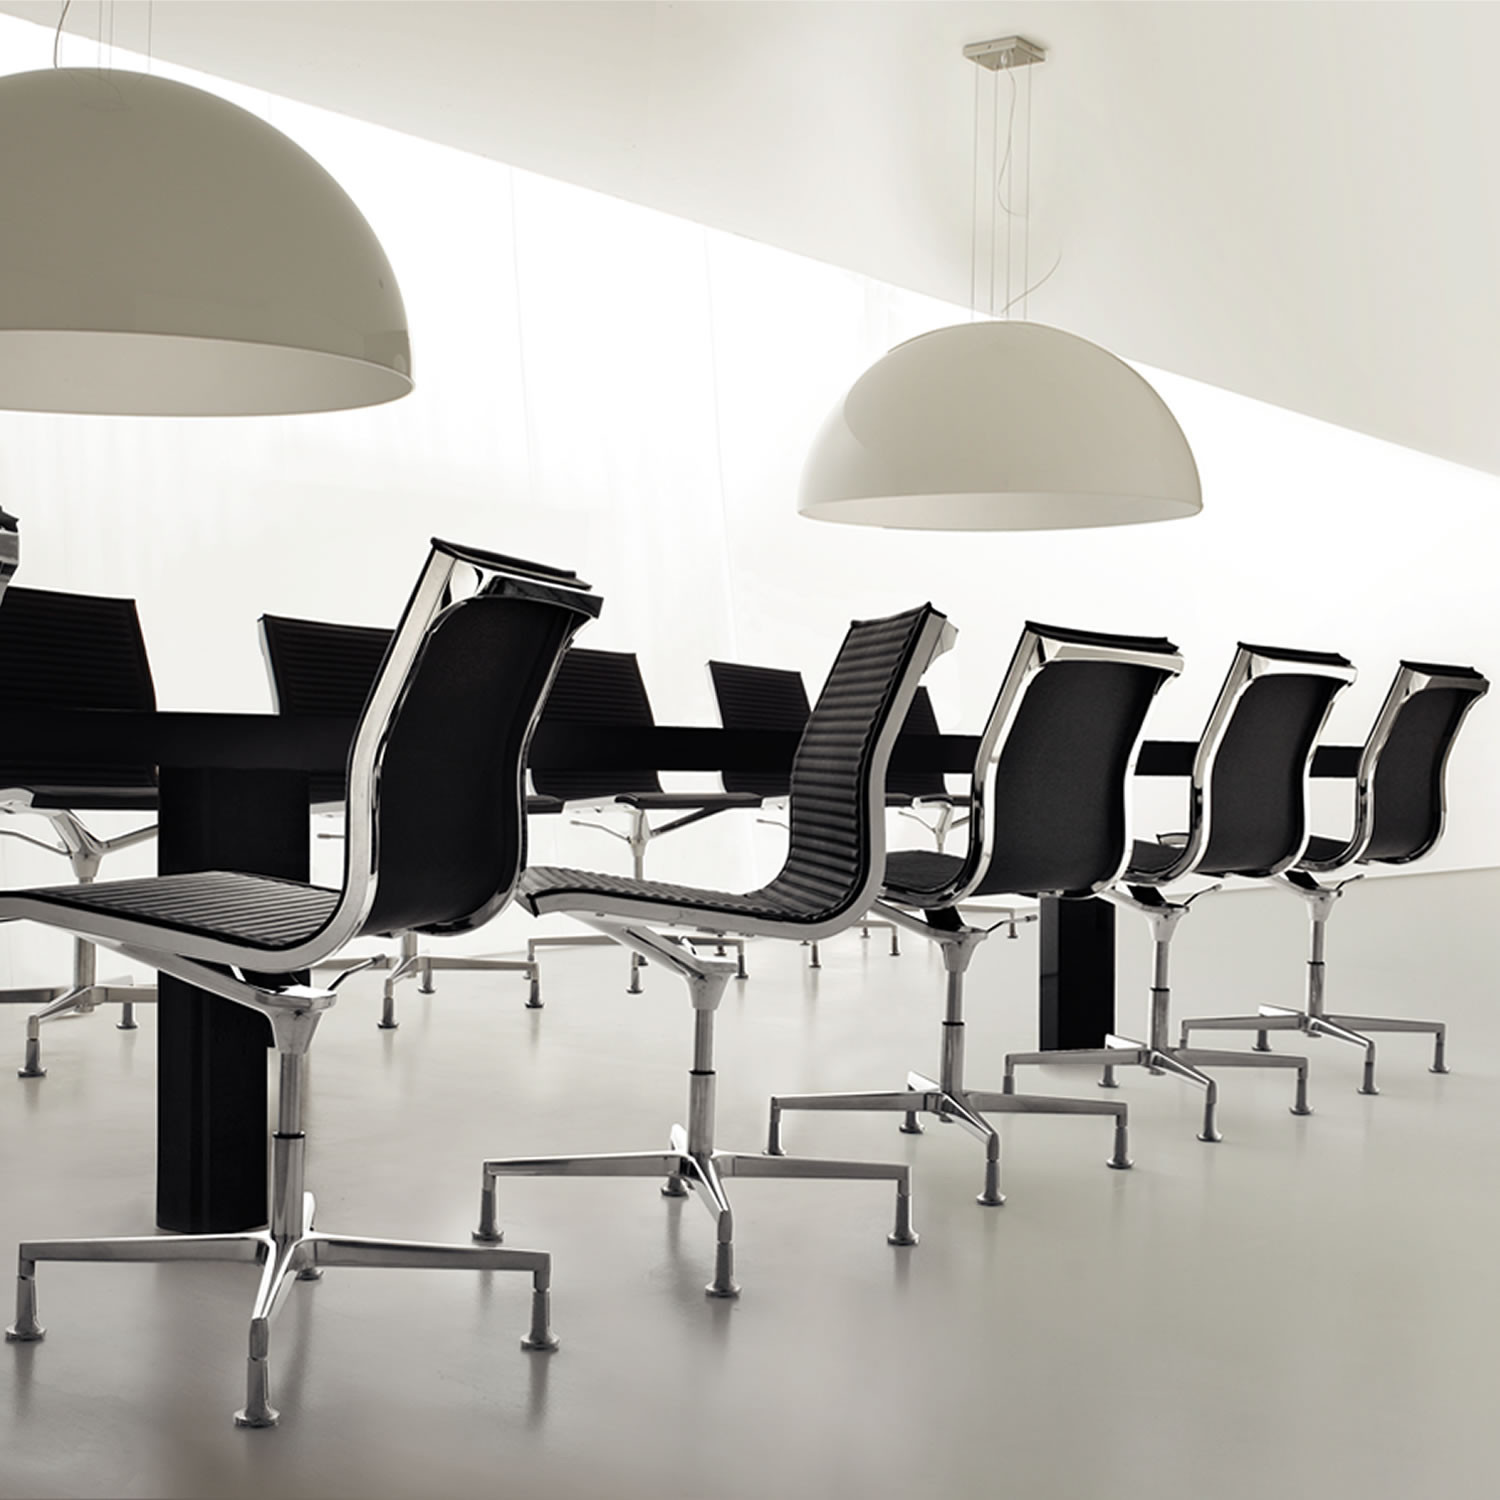 Nulite Executive Seating by Luxy